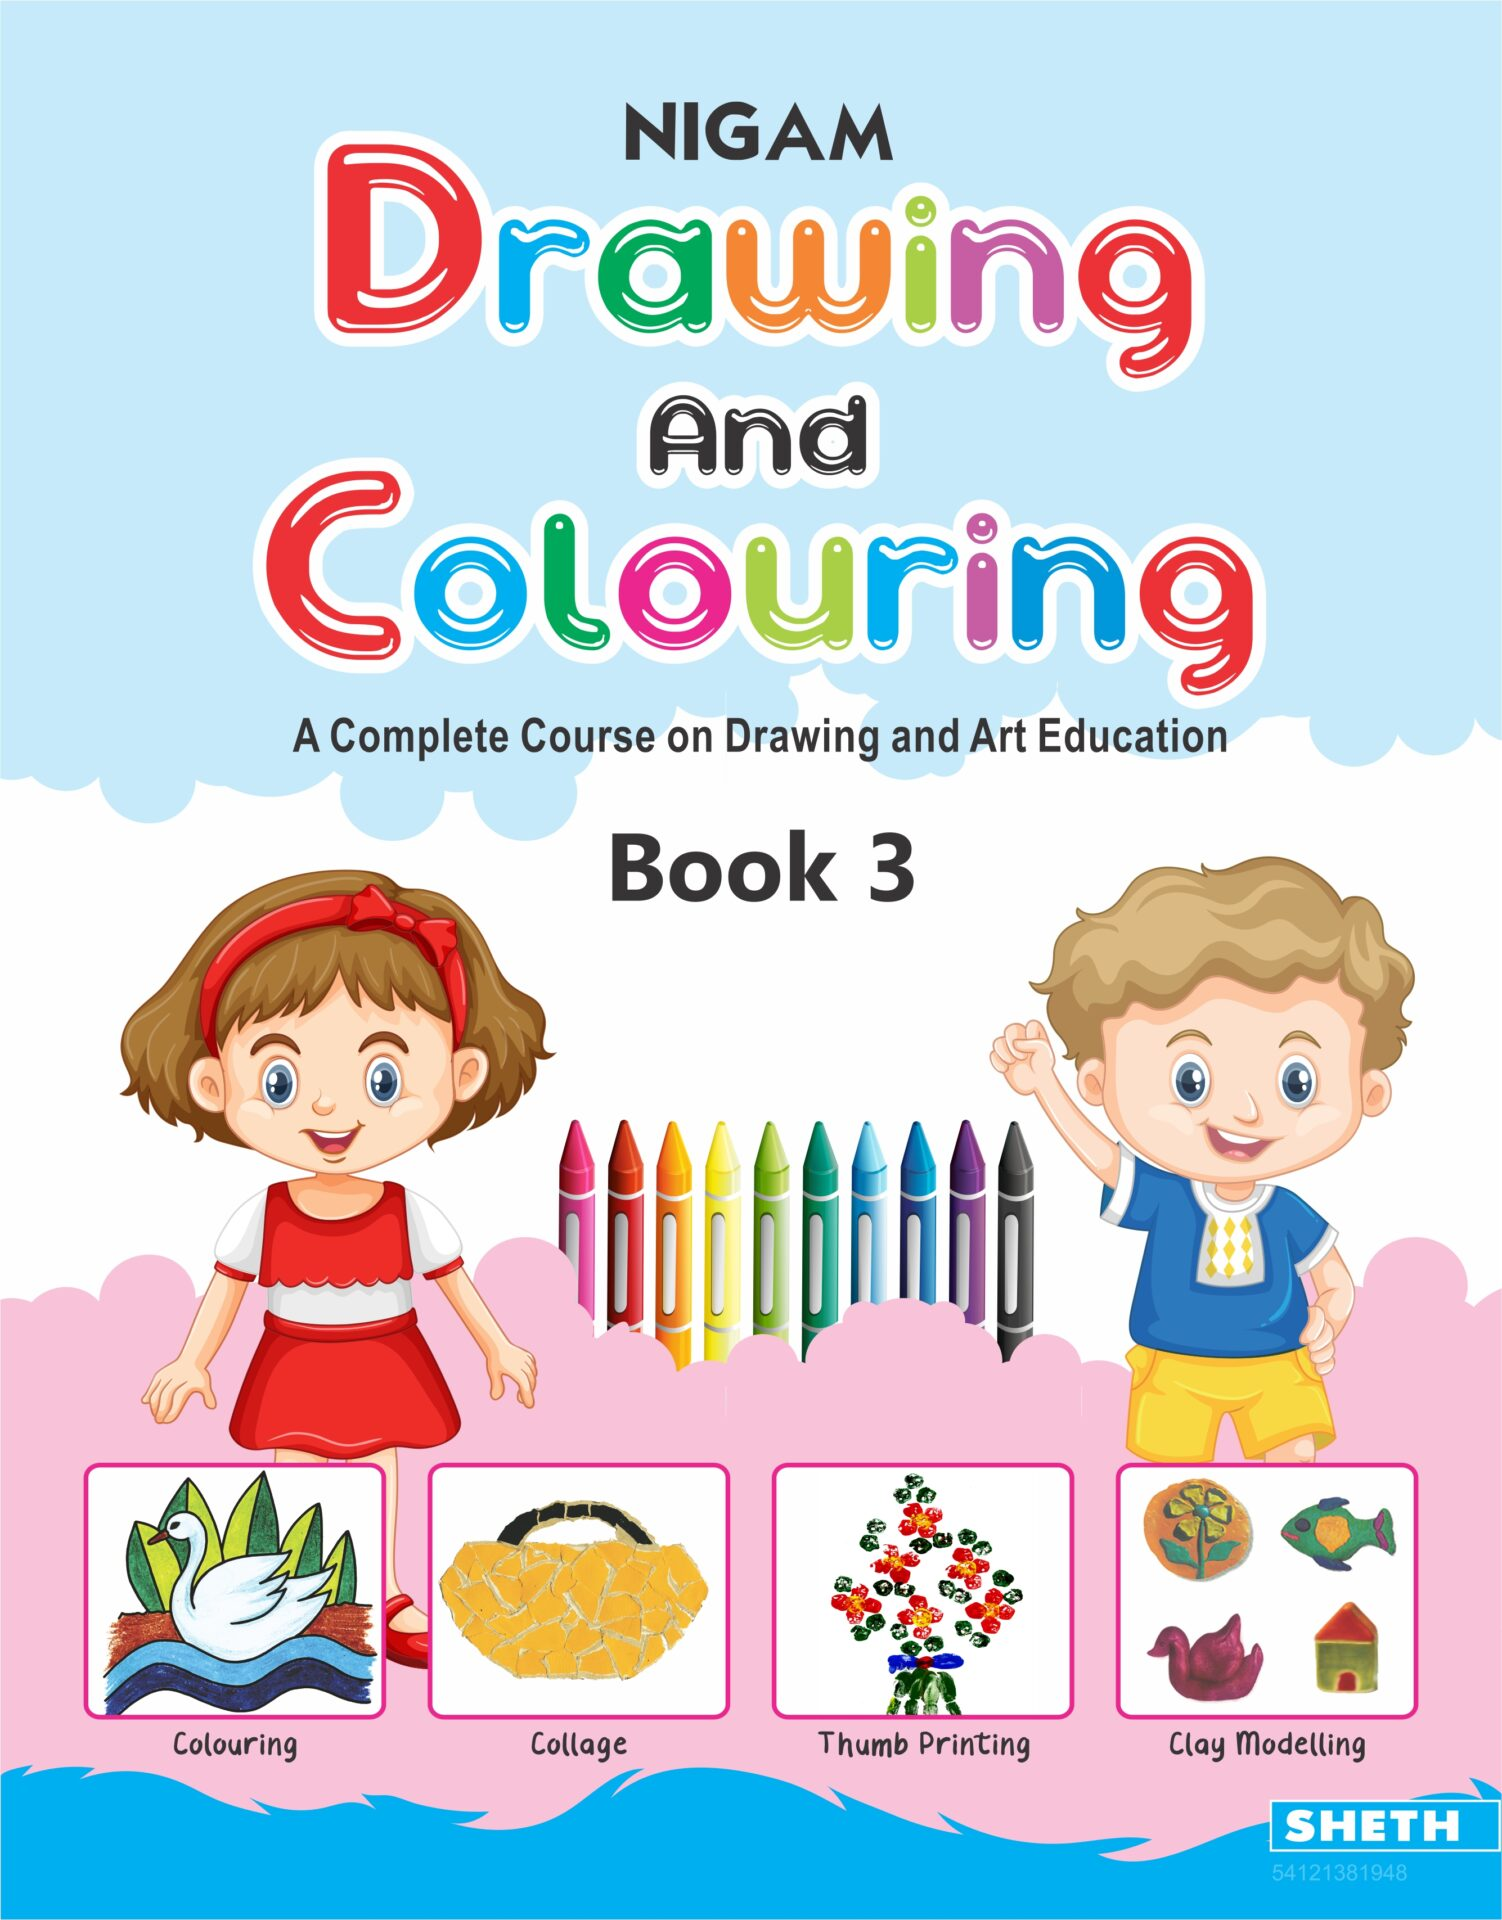 Nigam Drawing and Colouring Book 3 1